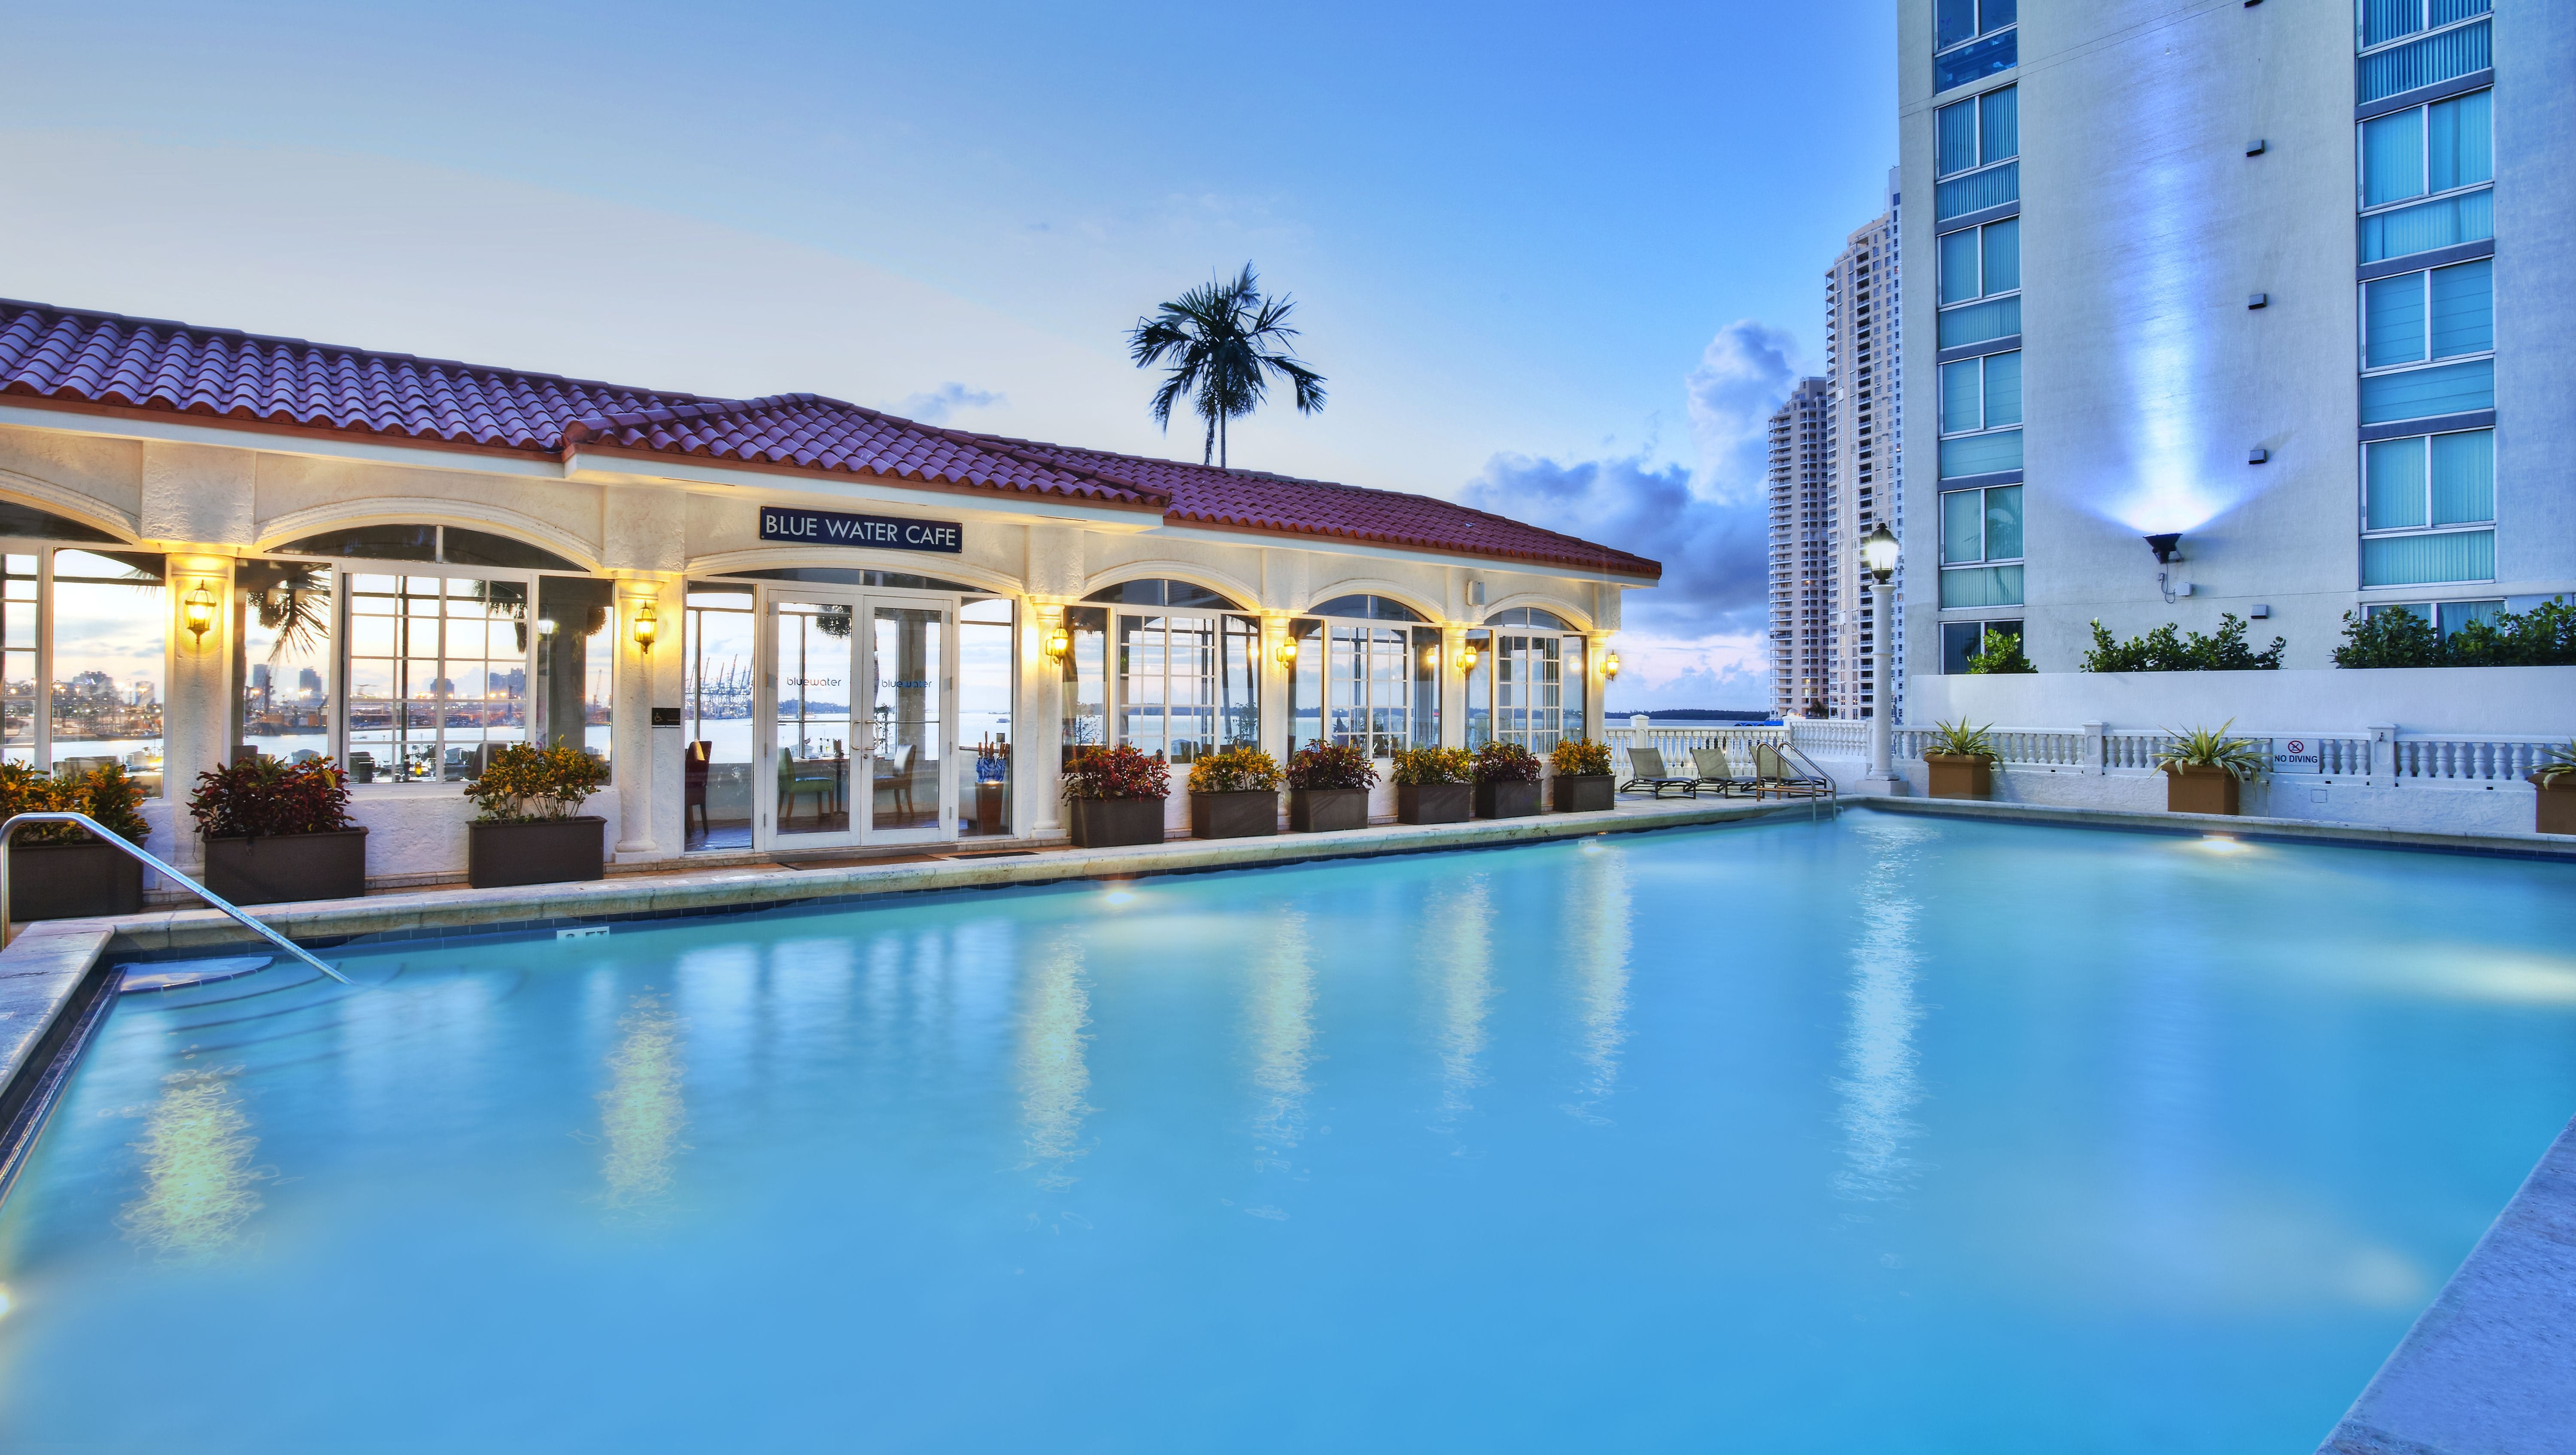 Miami Hotels Hotels Warranty Expiration